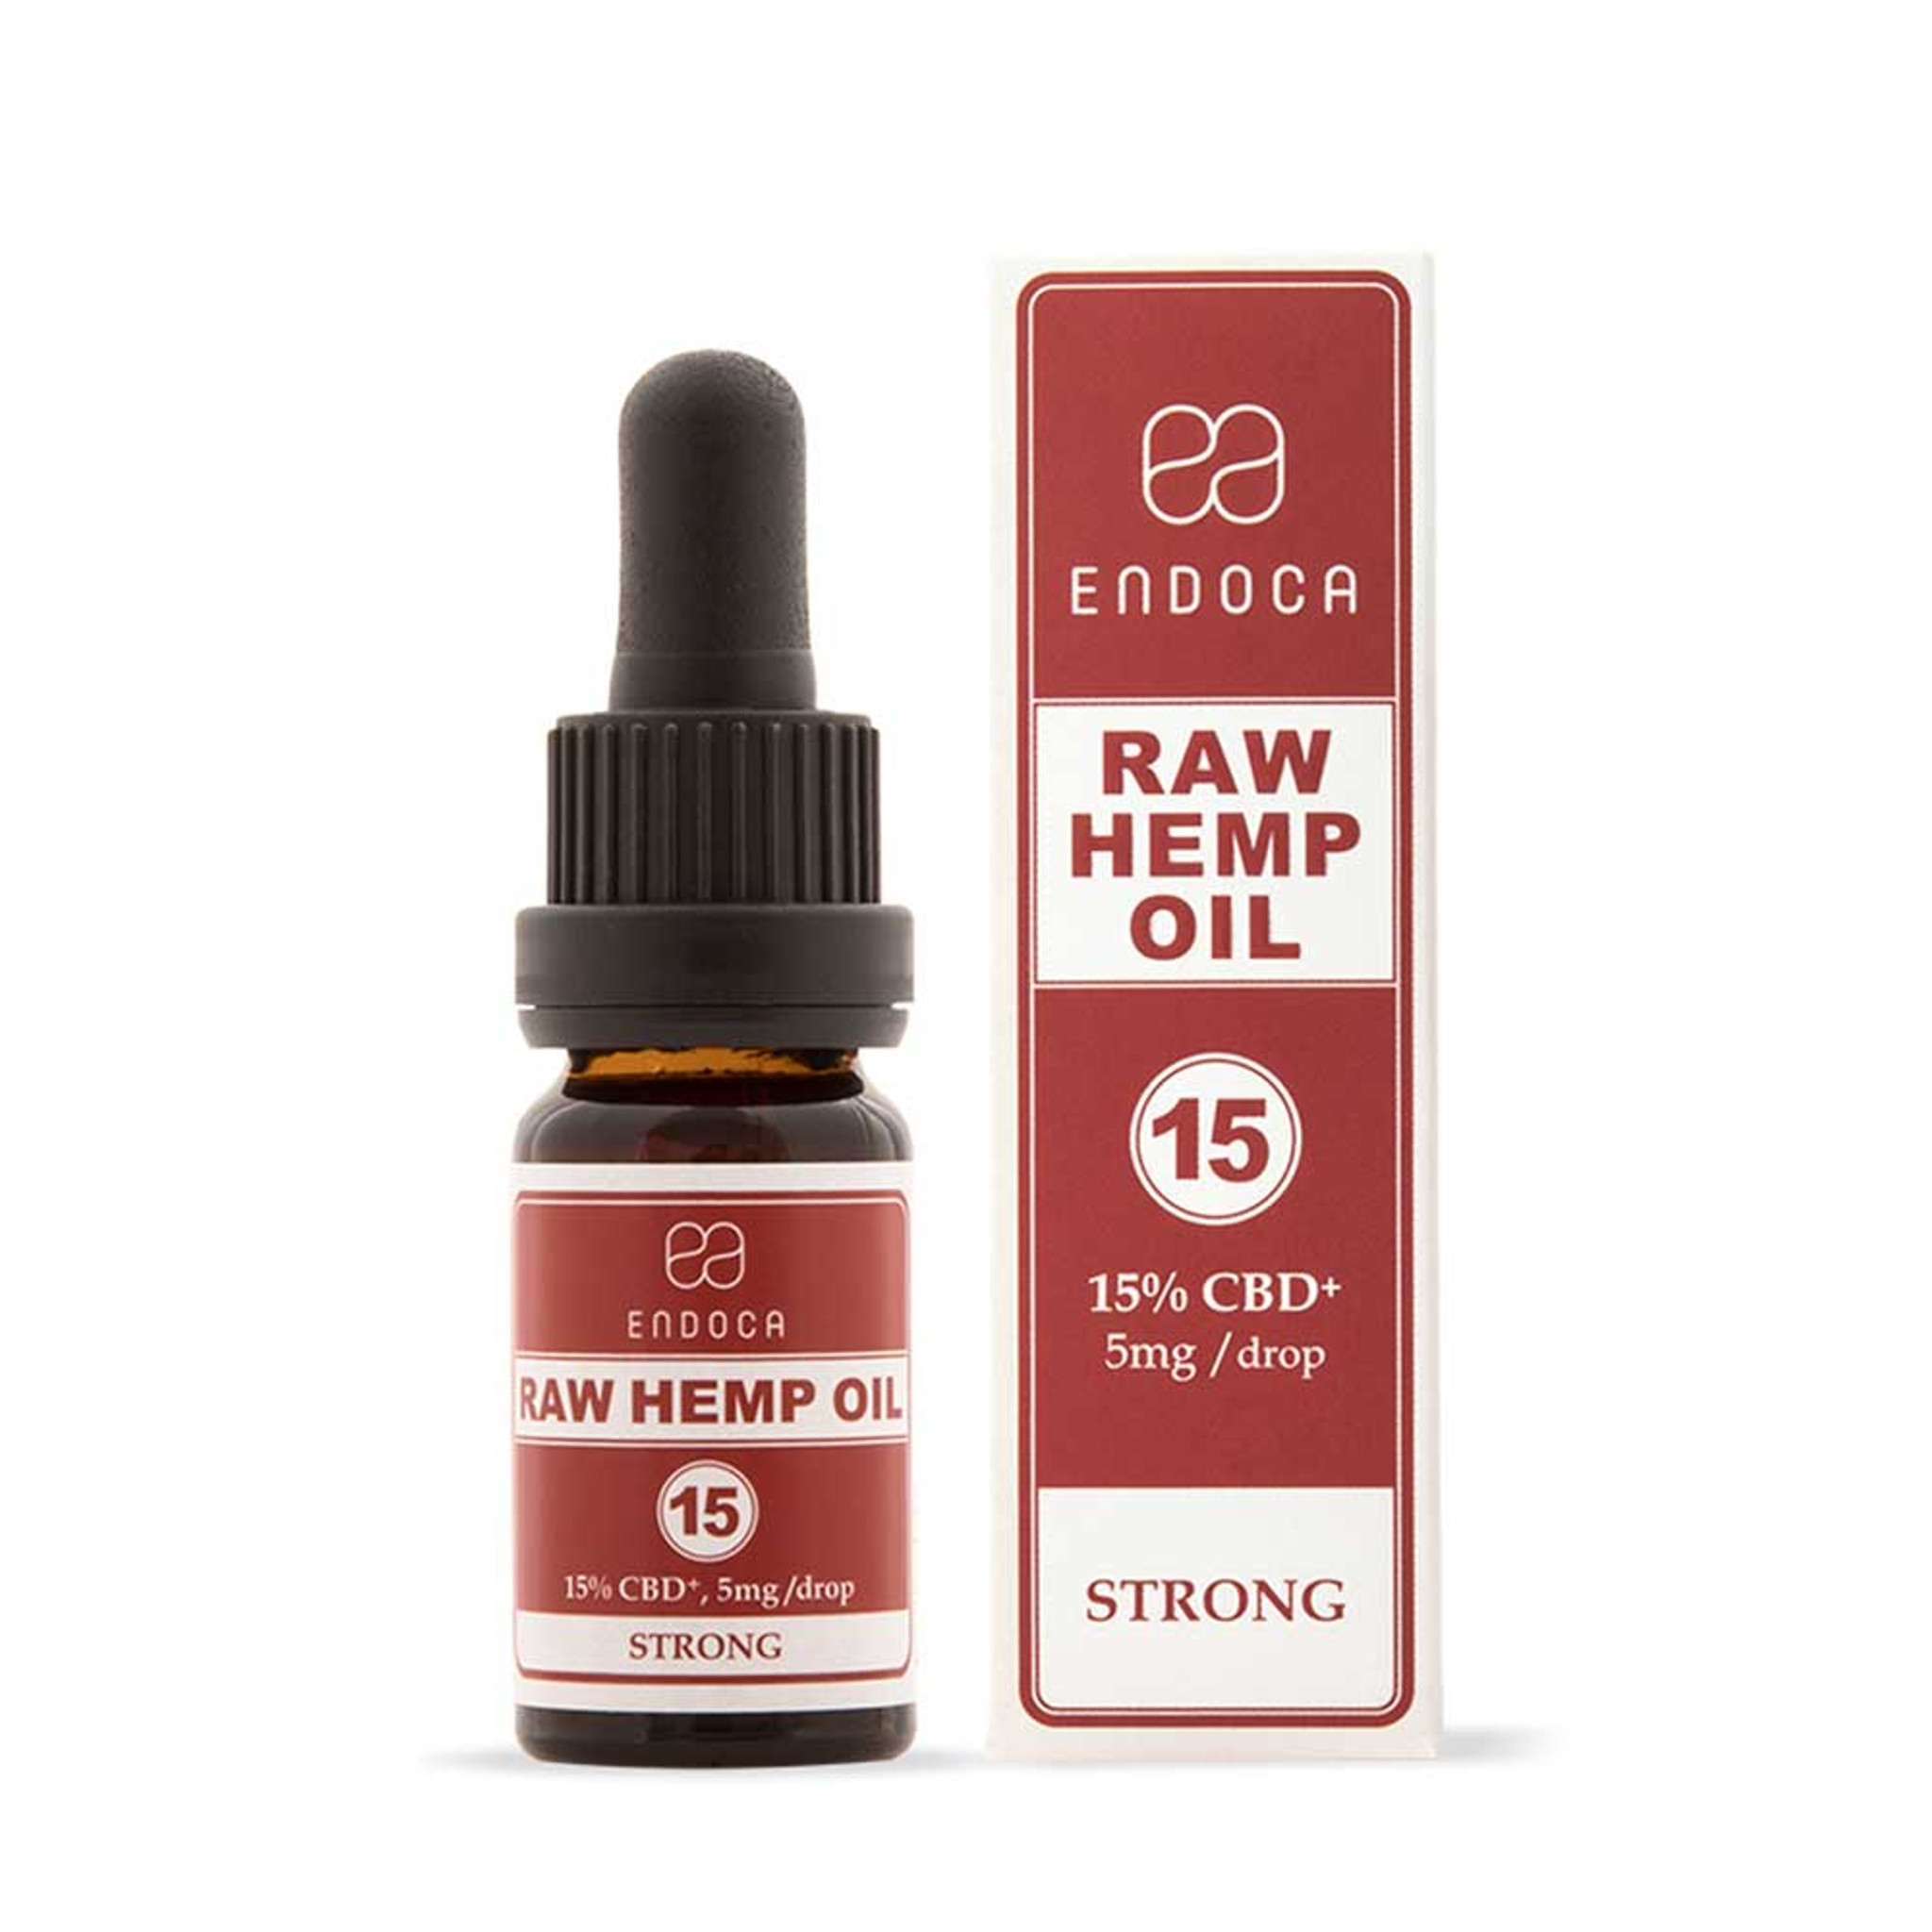 Endoca RAW Hemp Oil Drops 1500mg CBD+CBDa (15%)